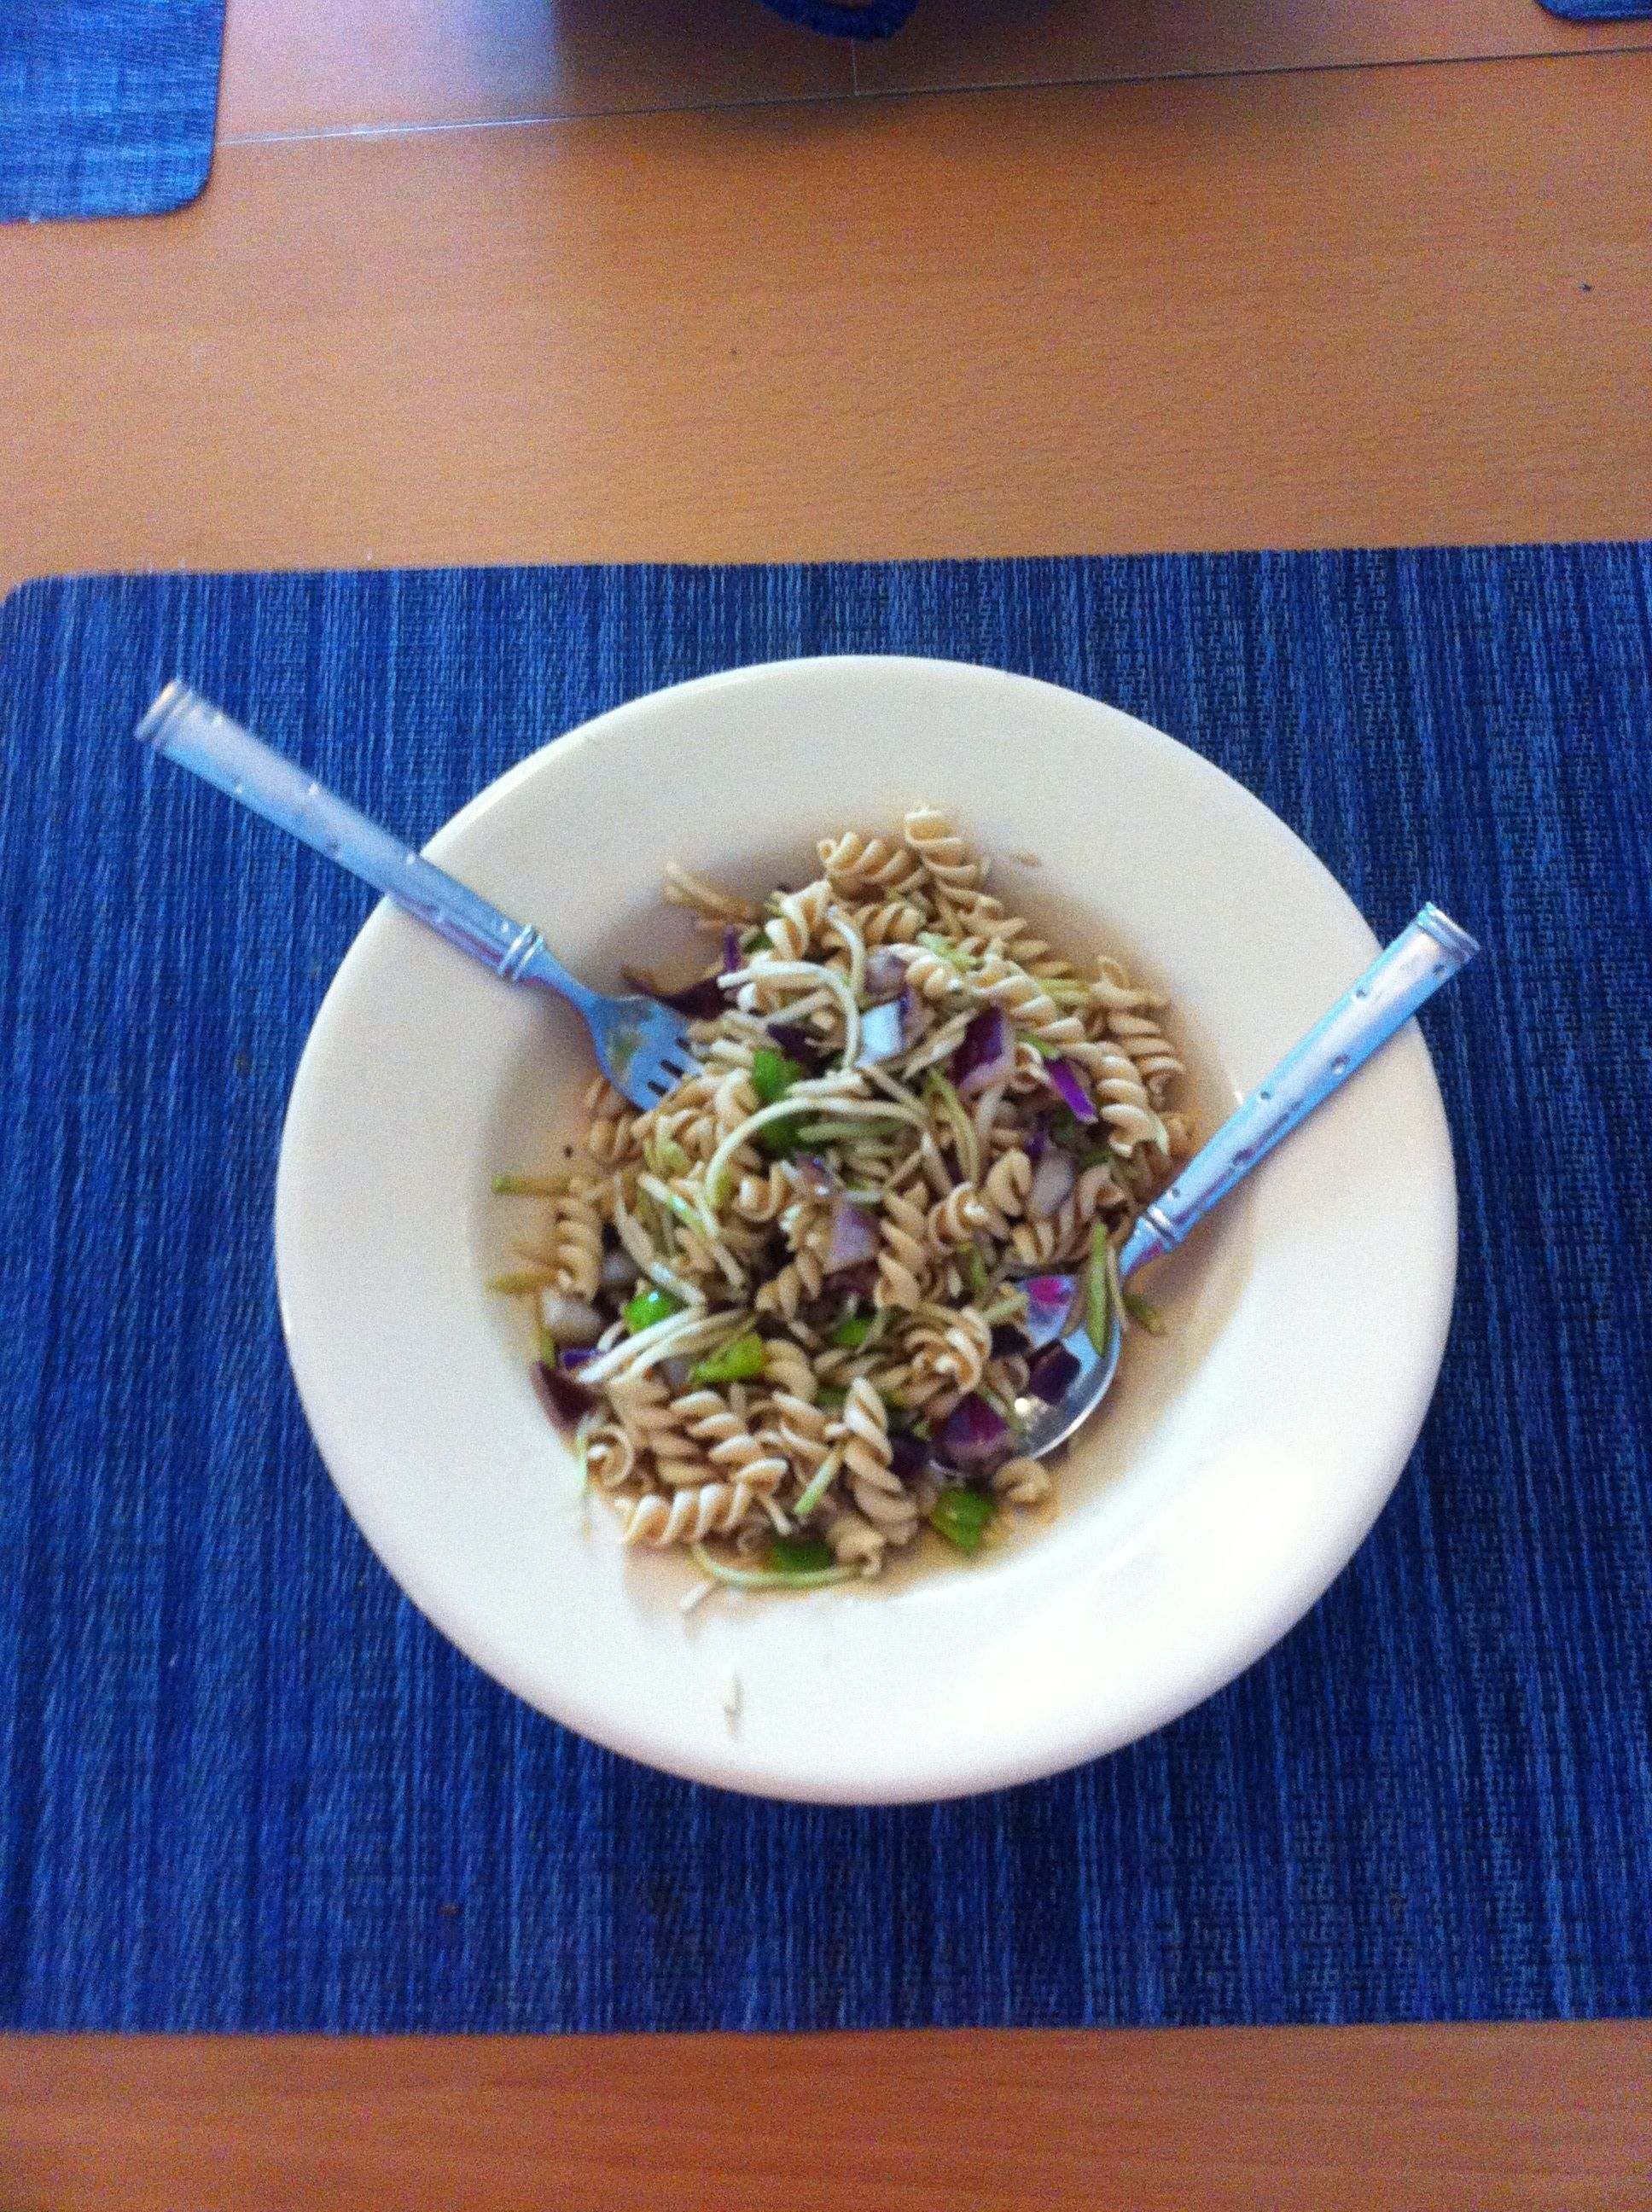 Ideal Protein Asian Pasta Salad!  1 C Broccoli Slaw 1 C red onion, green onion, mild pepper, chopped 1 Package Ideal Protein Rotini, cooked, drained, and rinsed 1 Tbsp low sodium soy sauce 2 tsp olive oil 1/2 tsp chili paste  Mix all ingredients.  Serve chilled. One of my favorite IP lunches!